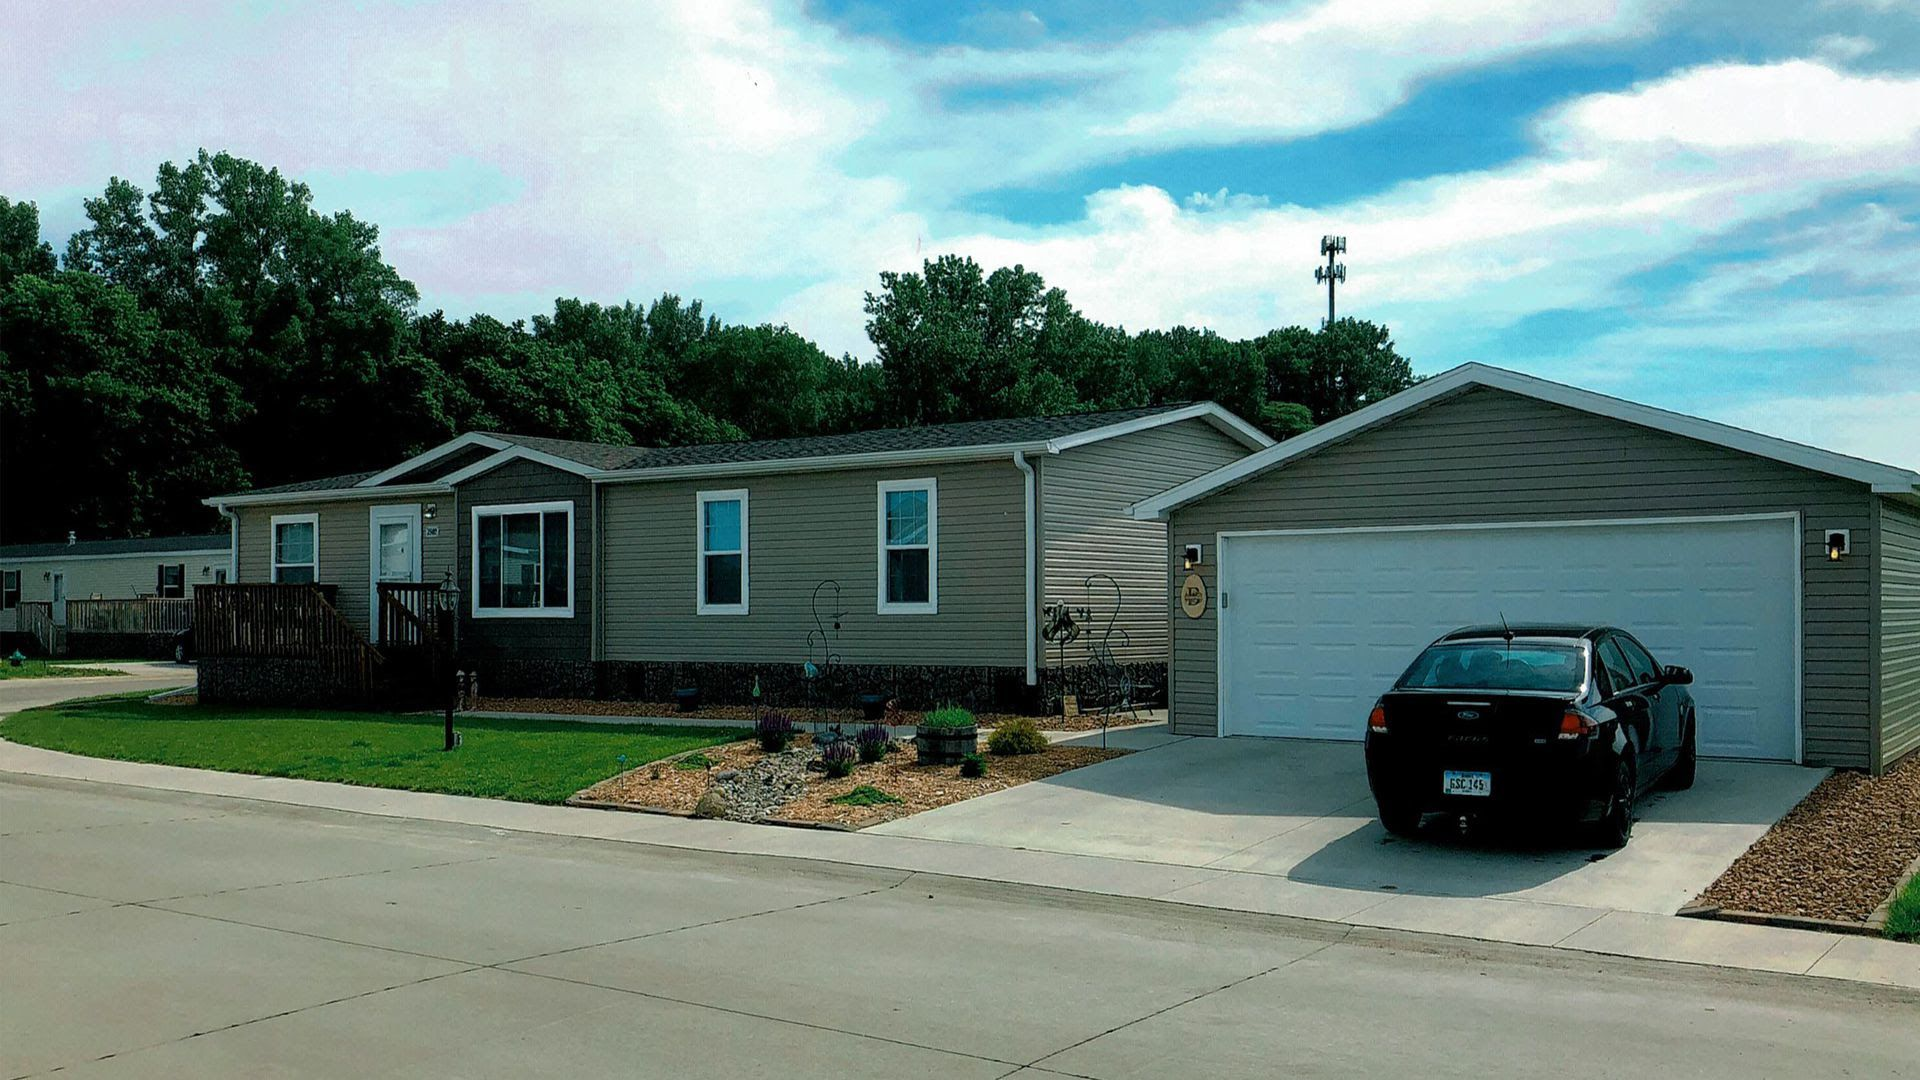 A photo of the exterior of a manufactured home.